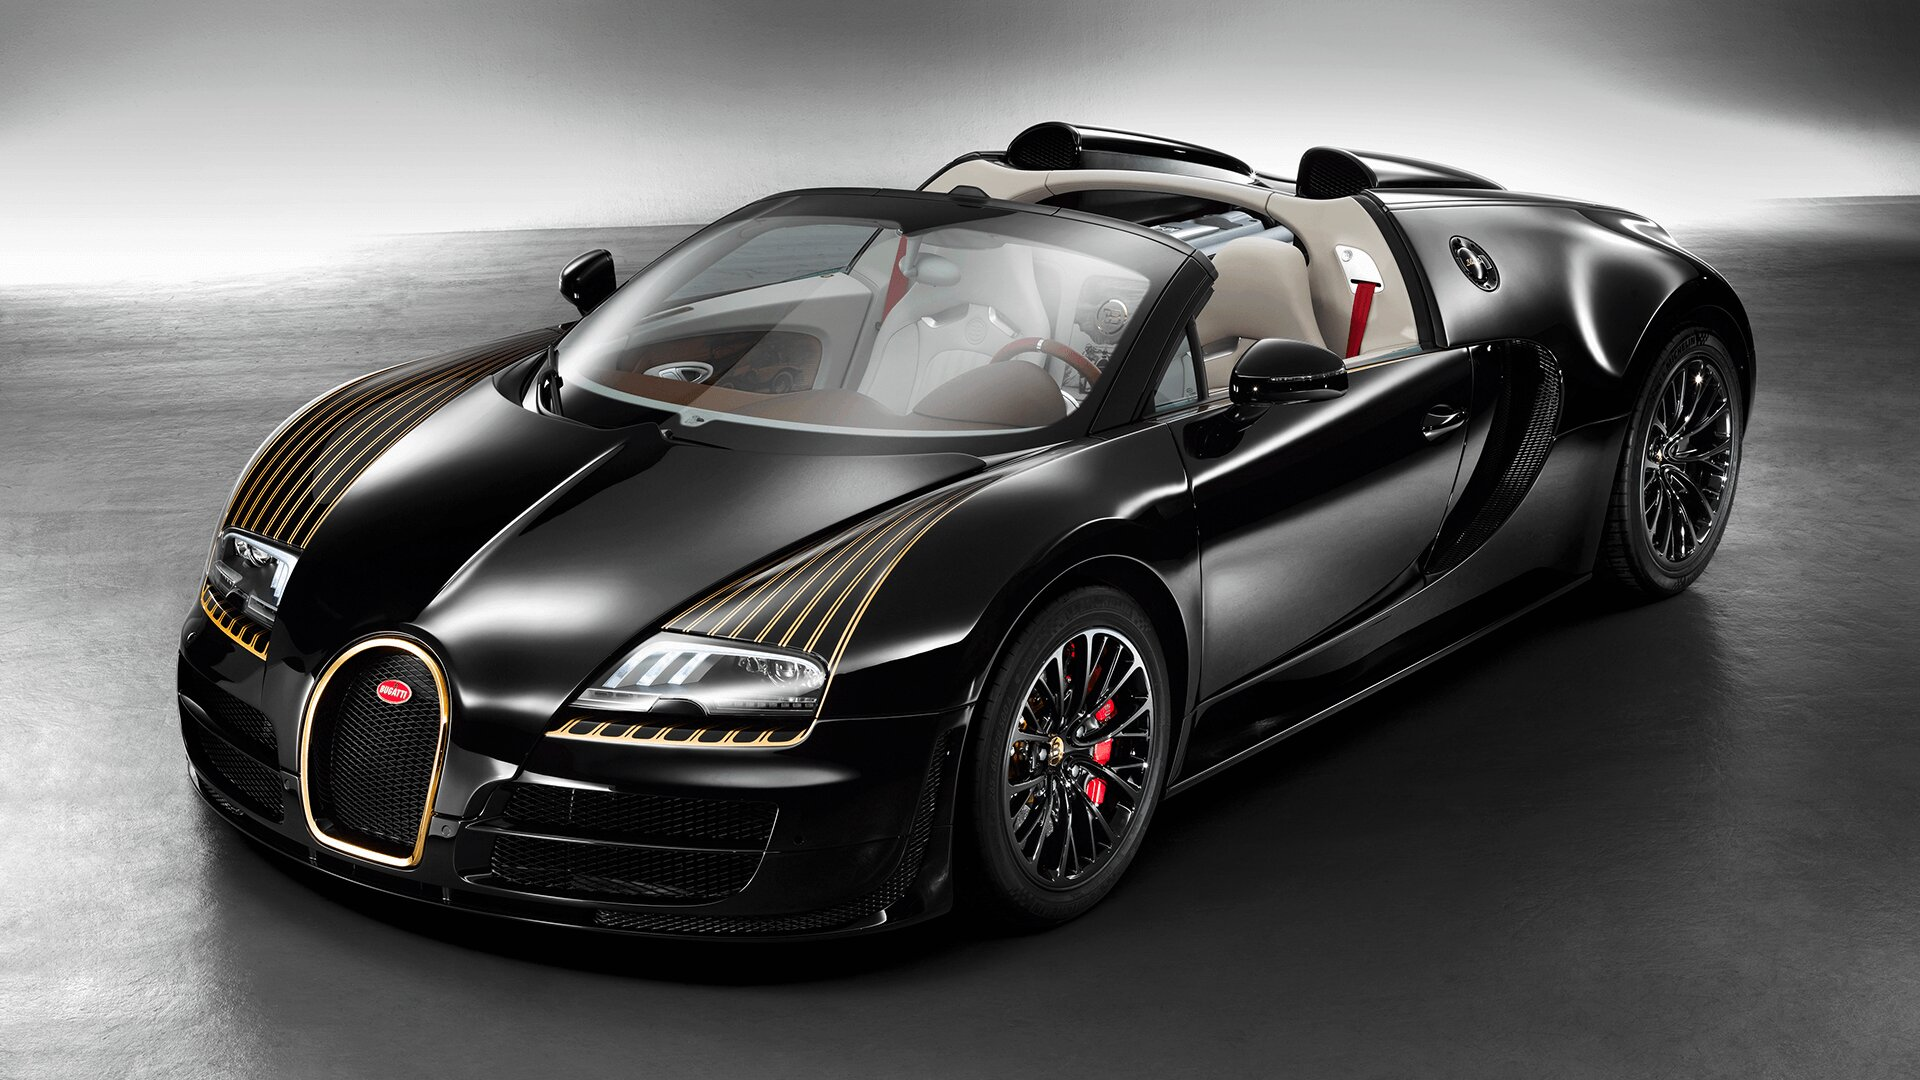 Bugatti Veyron Black Bess Model